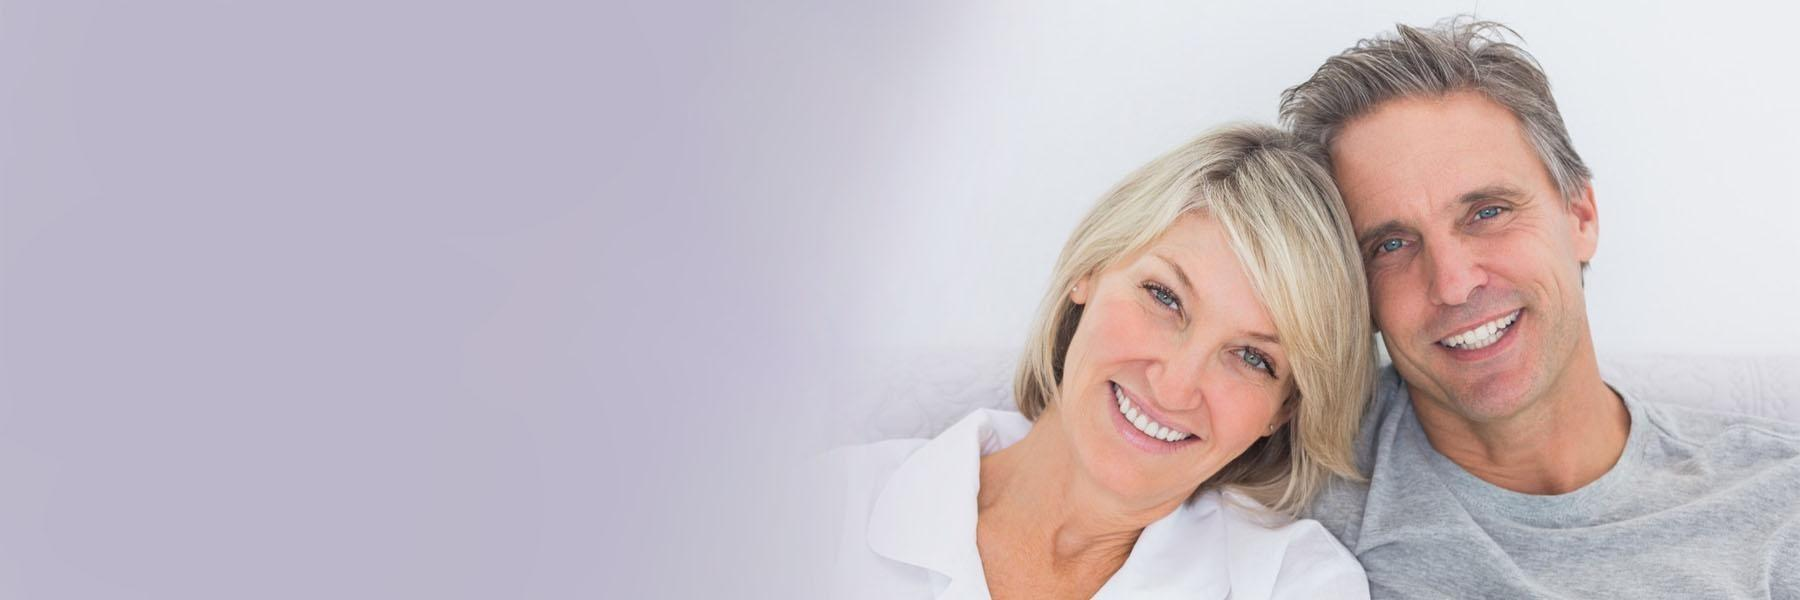 Complete and Partial Dentures in Waynesboro, VA banner image